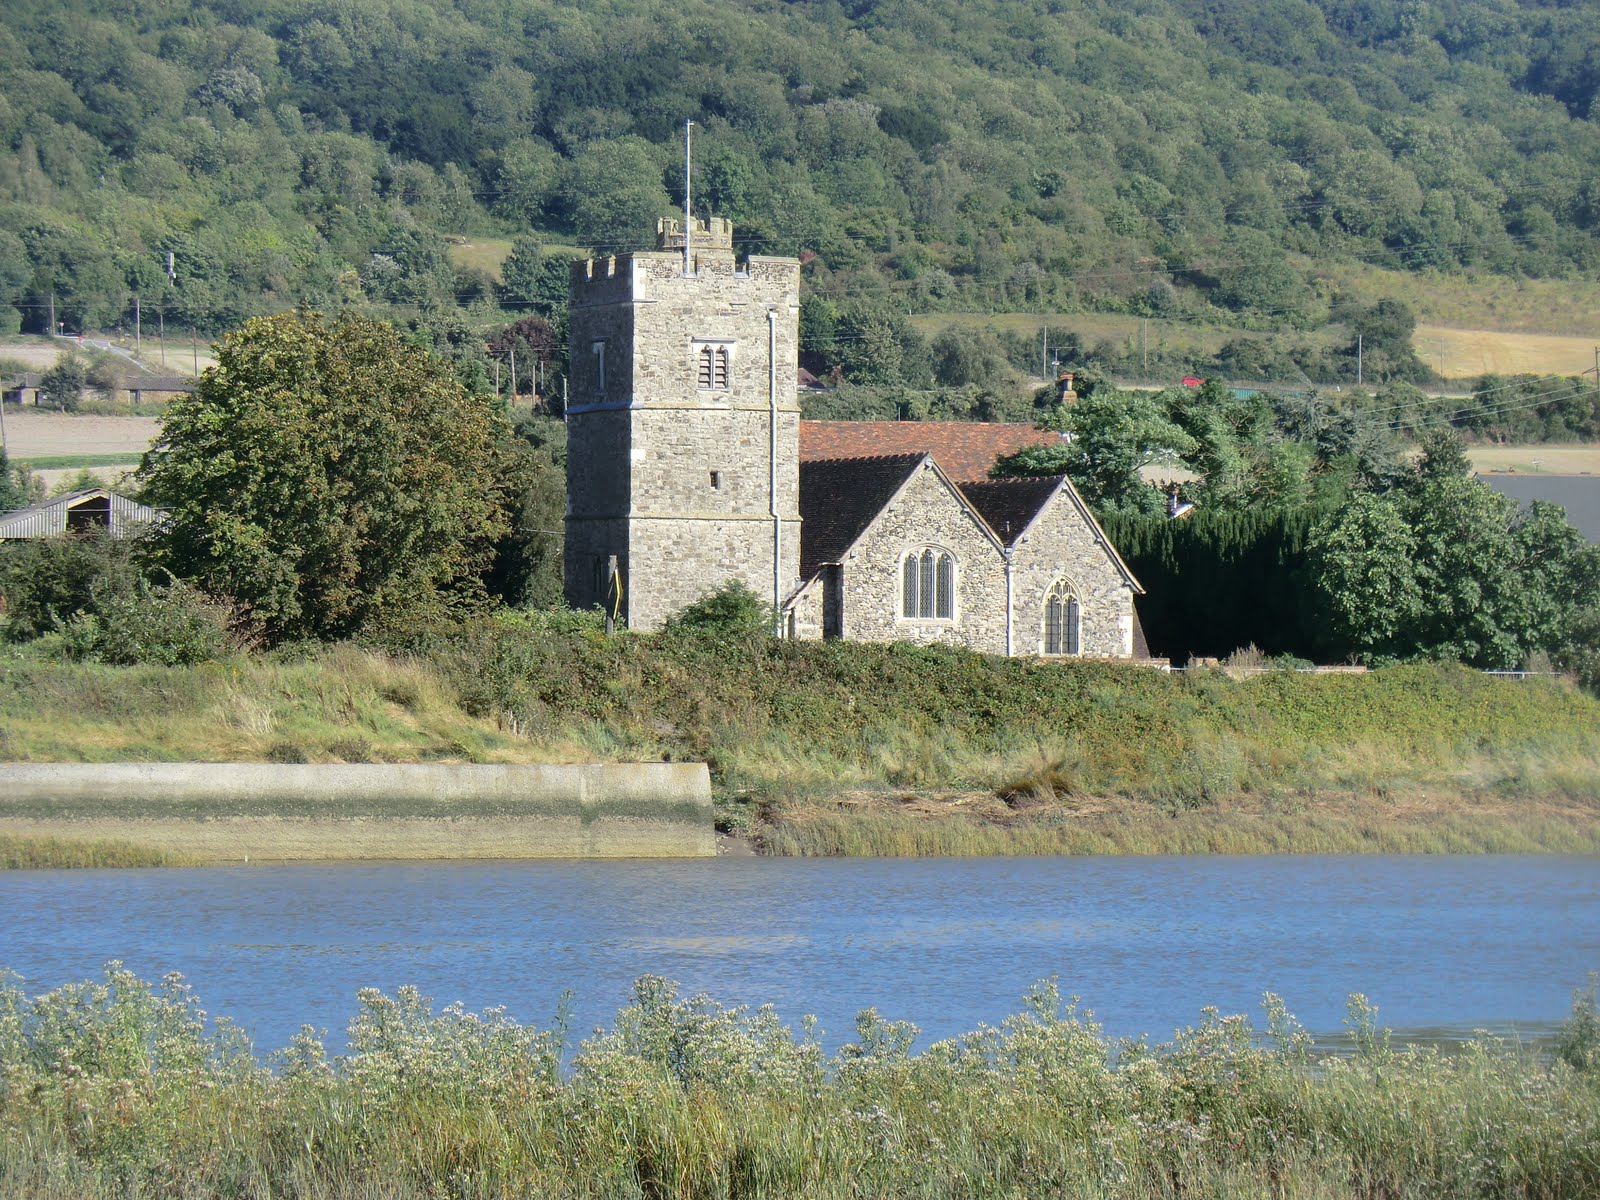 CIMG3948 Wouldham church on the far bank of the River Medway